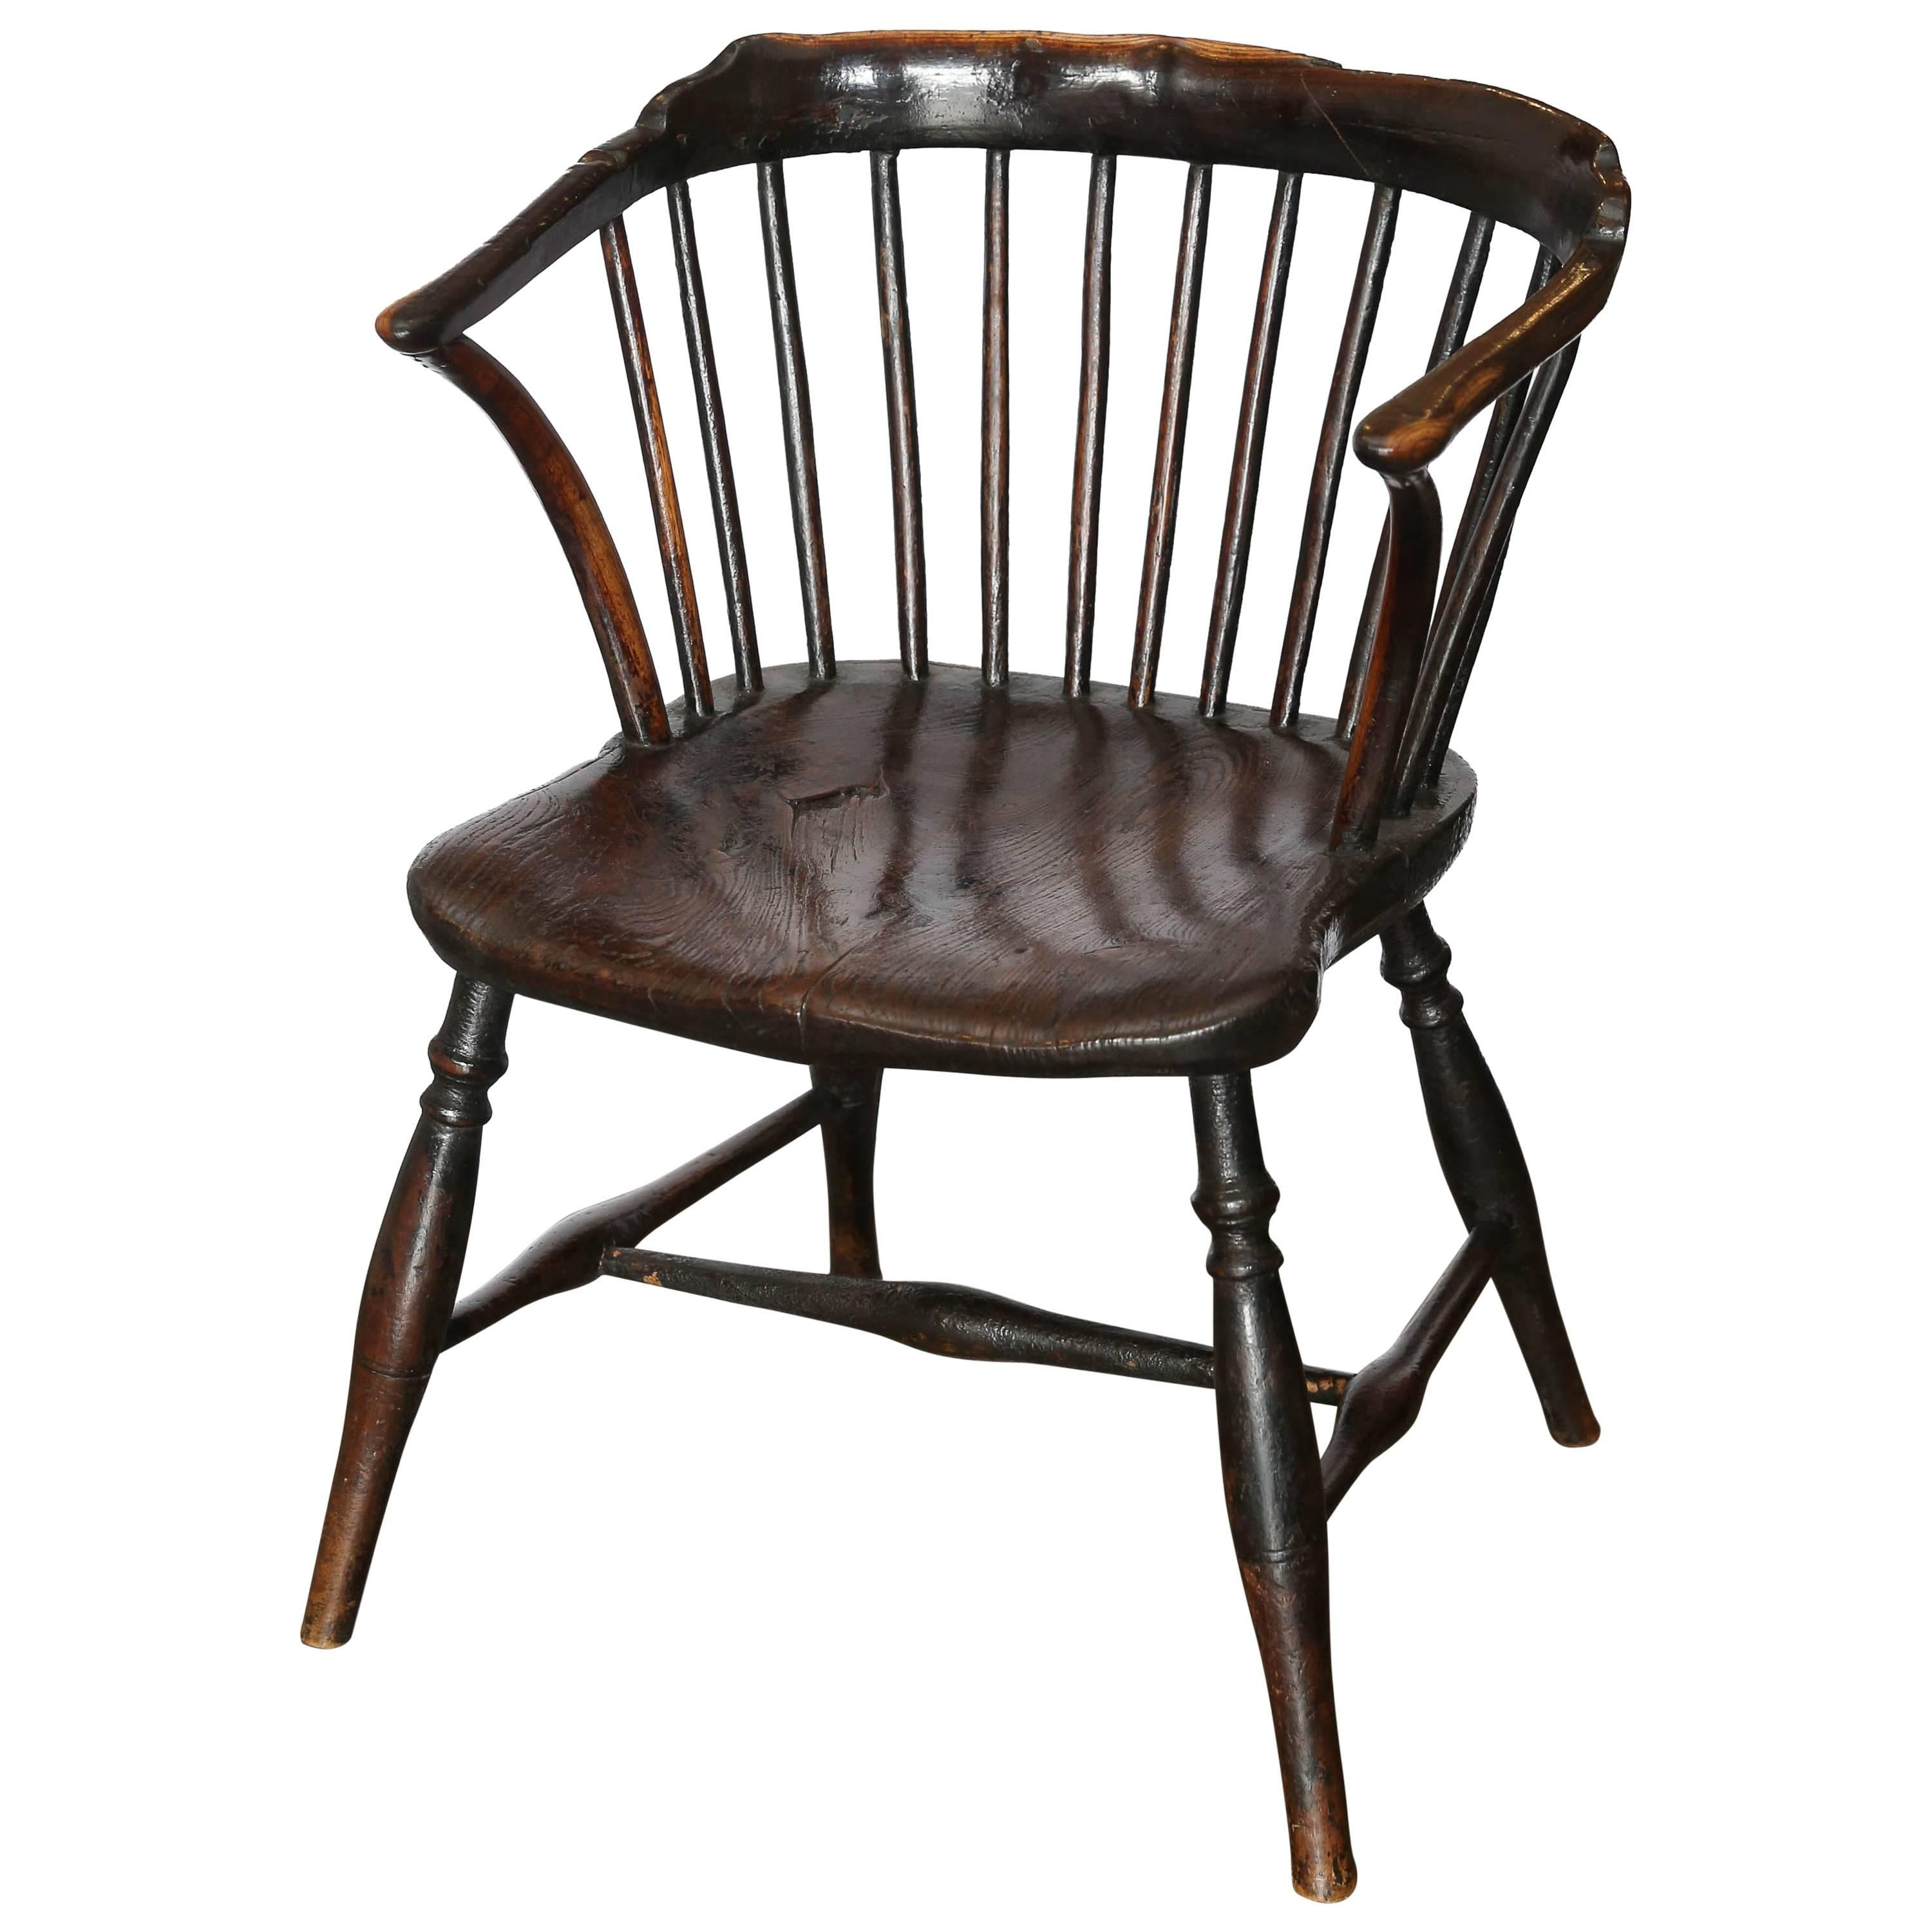 Antique 19th Century Windsor Chair